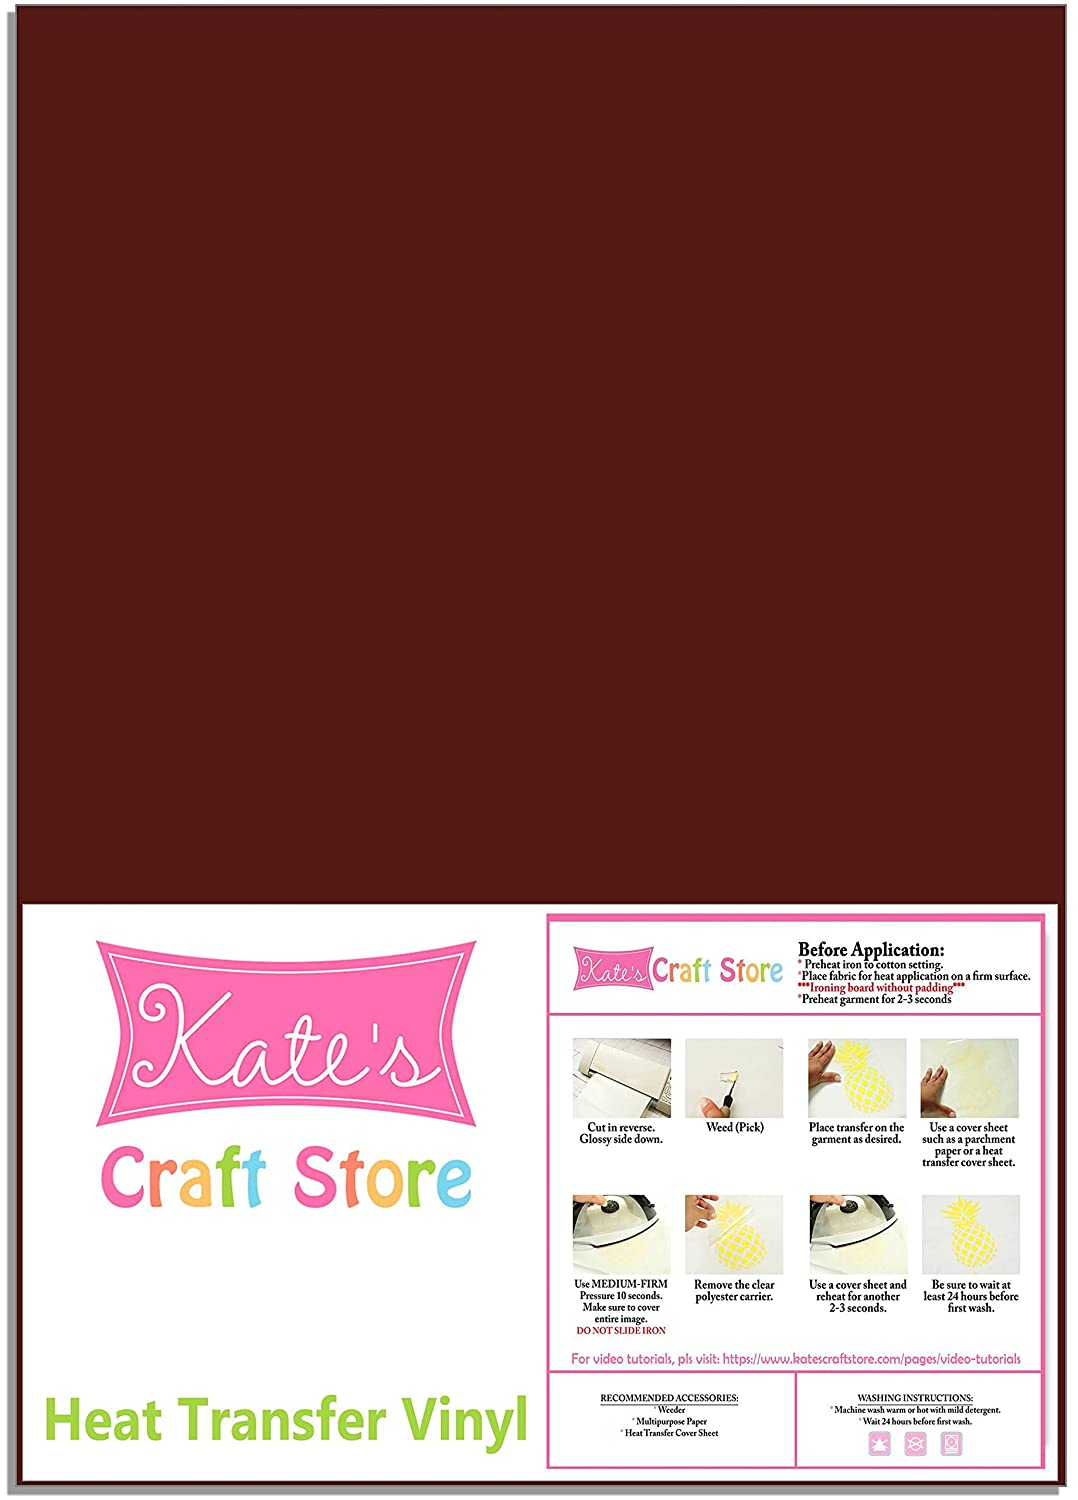 Iron on for Silhouette Cameo Hats and Any Fabric FilmTailor 10 x 12 Heat Transfer Vinyl Basic 5 Sheets Excellent for T-Shirt PU HTV Neon Orange Cricut Heat Press Machines